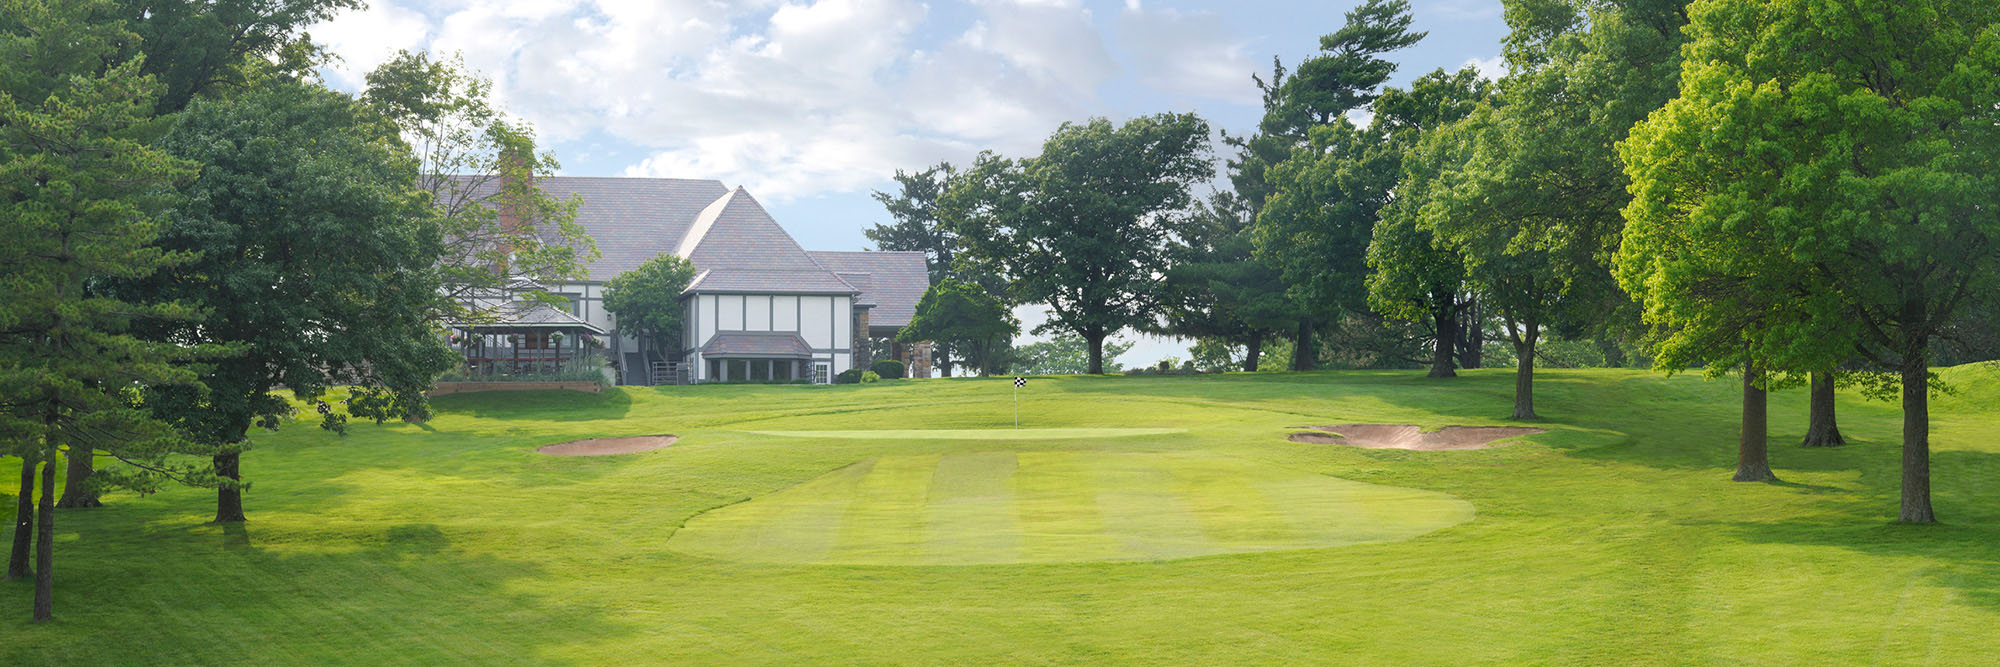 Golf Course Image - Oakwood Country Club No. 13